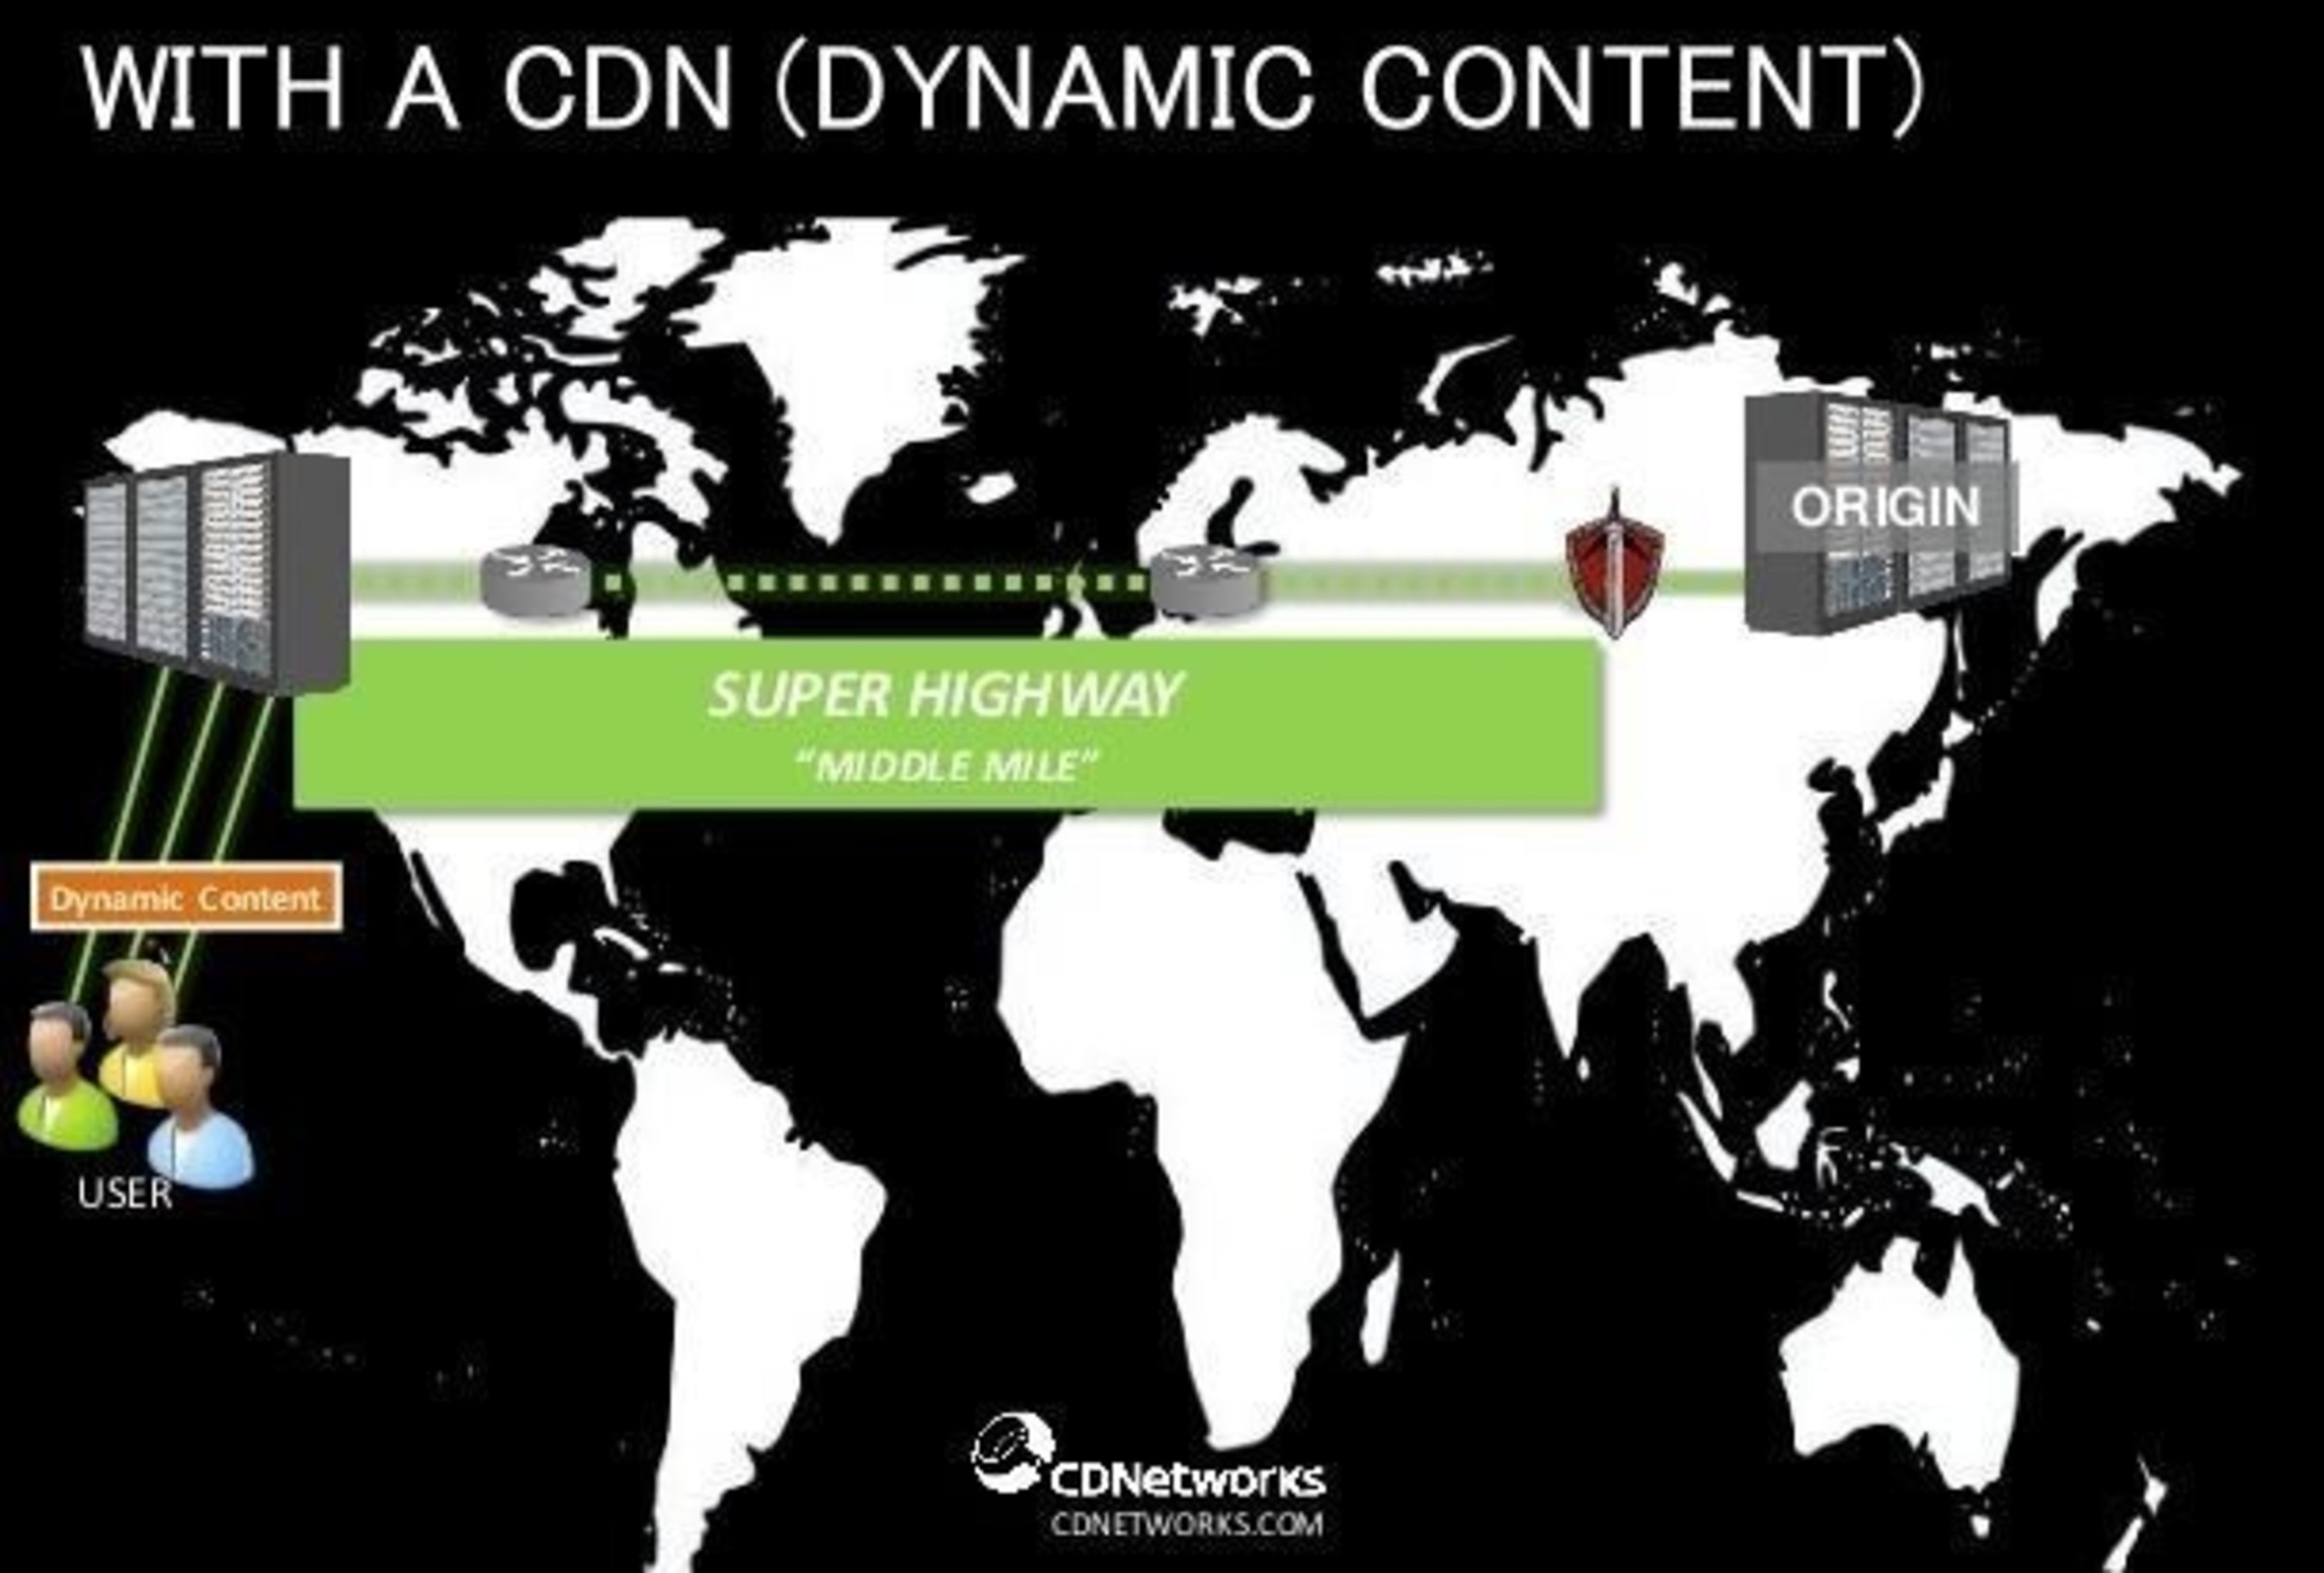 With a CDN Dynamic Content